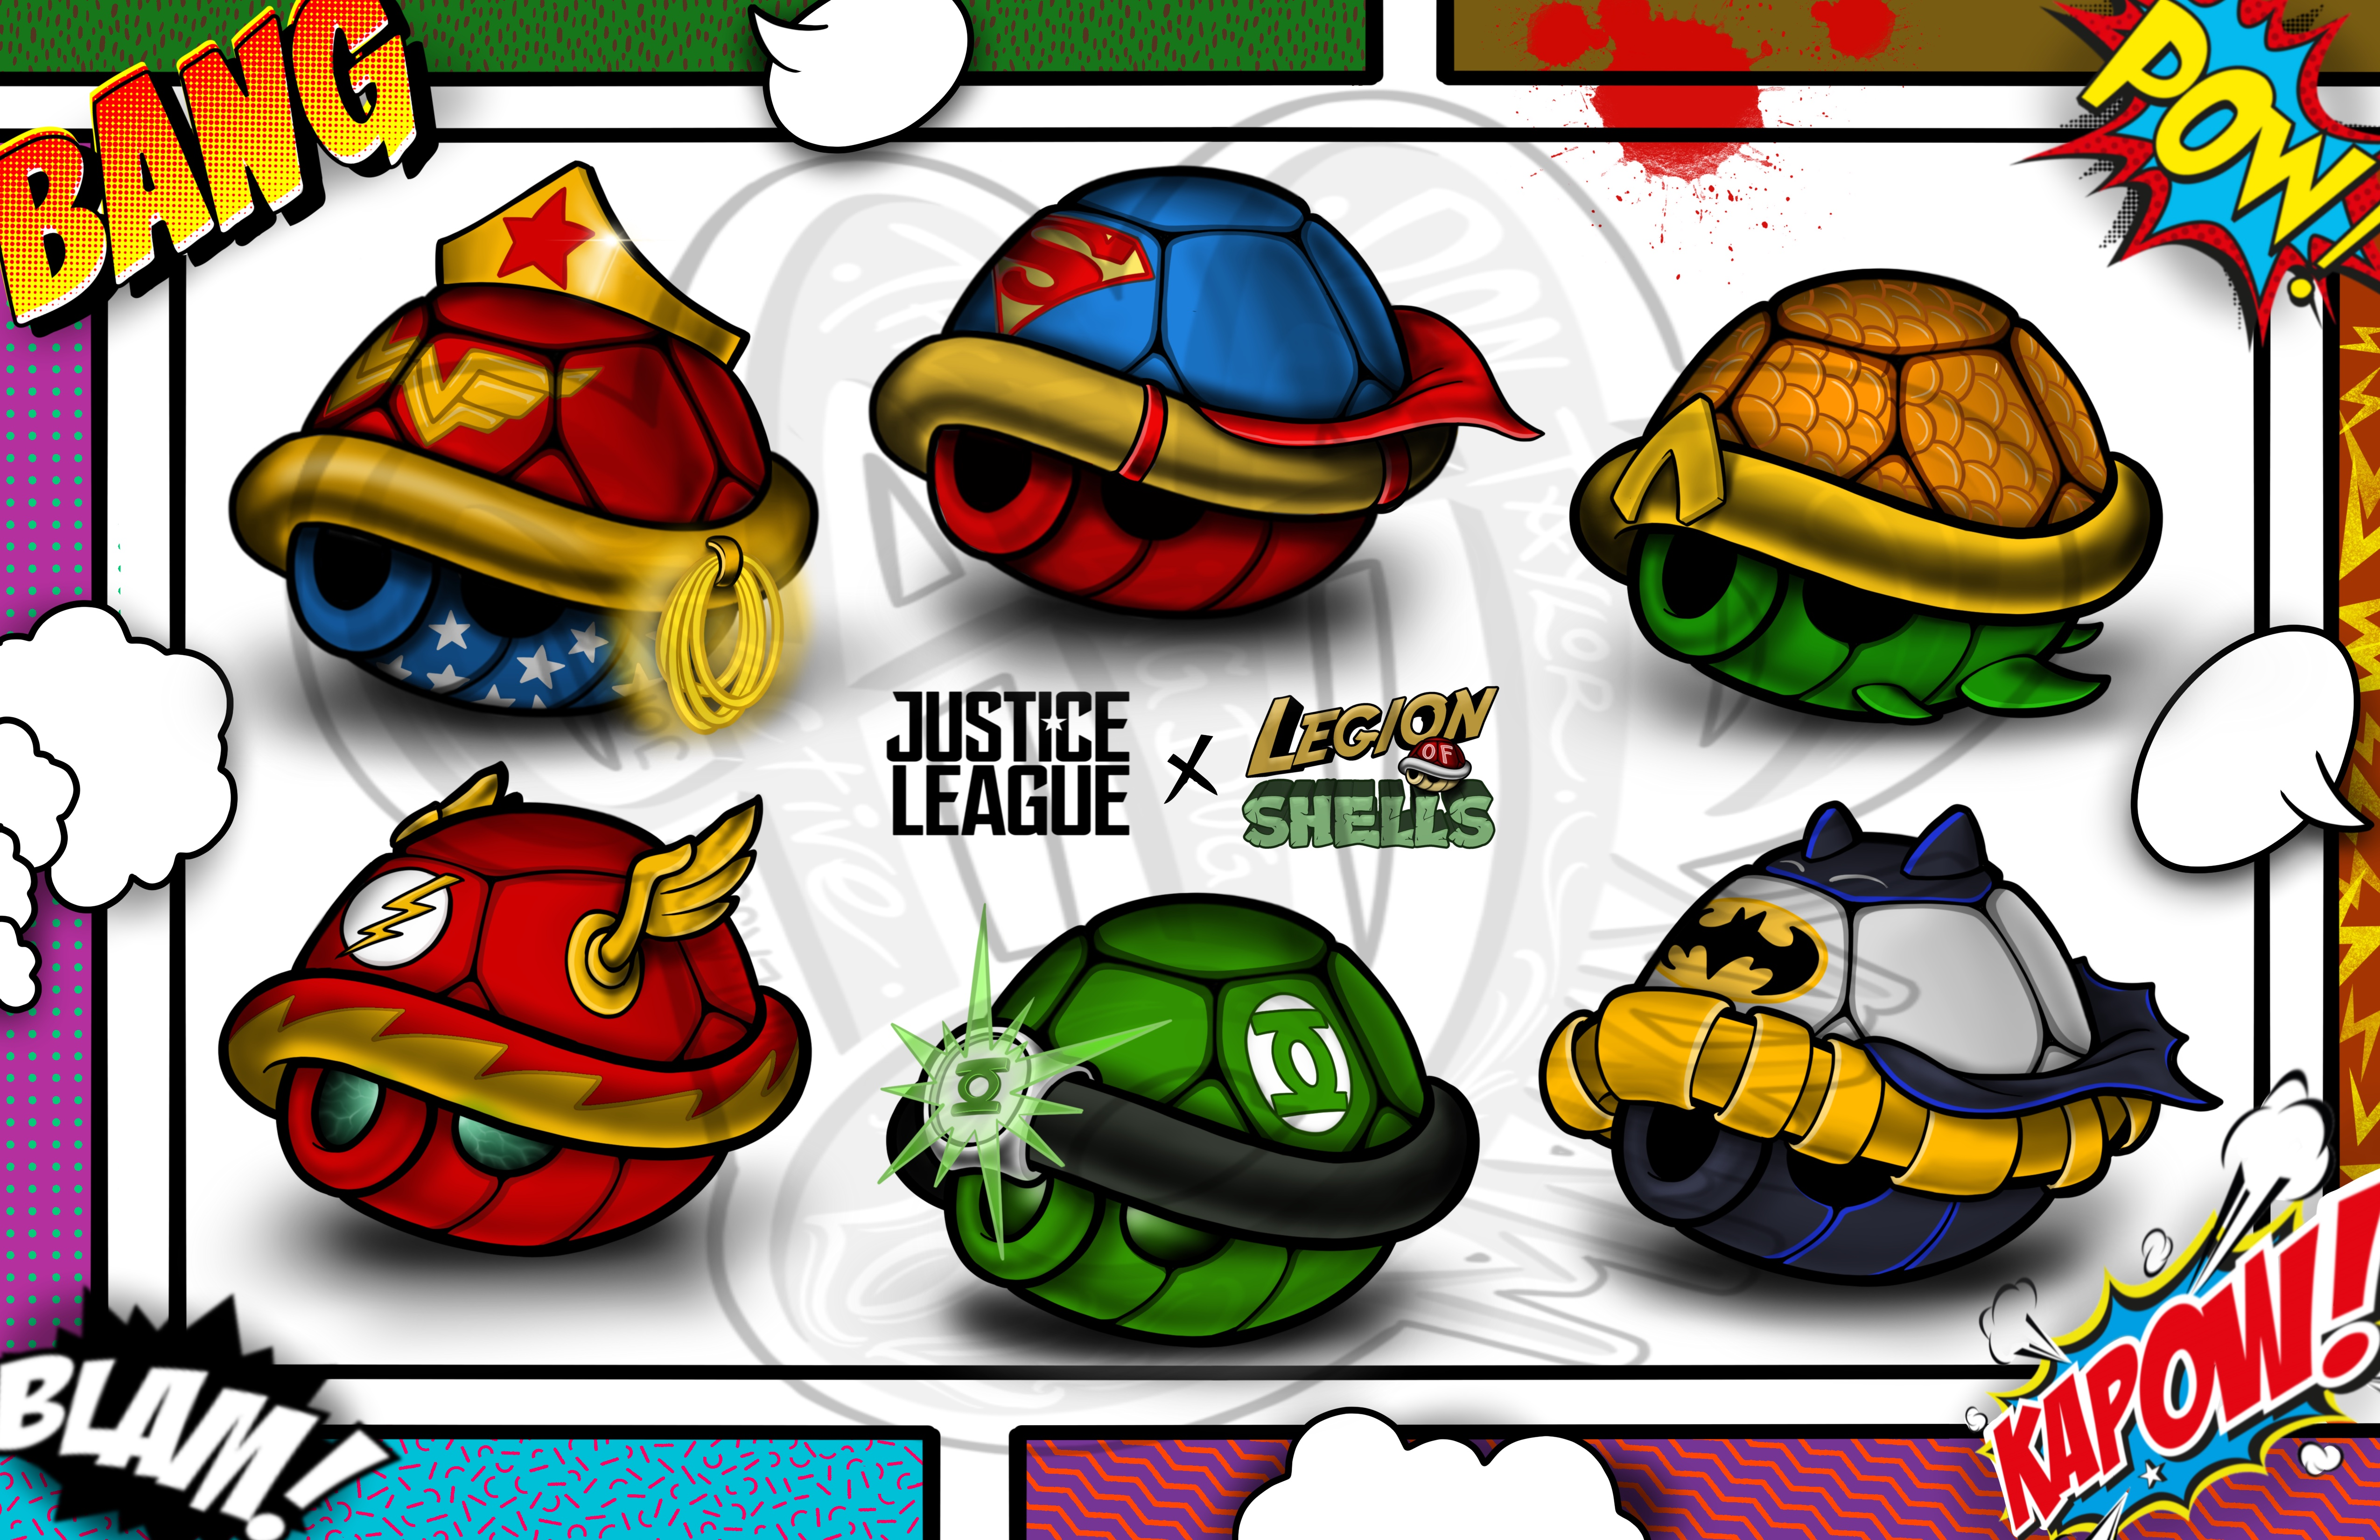 Justice League Shells